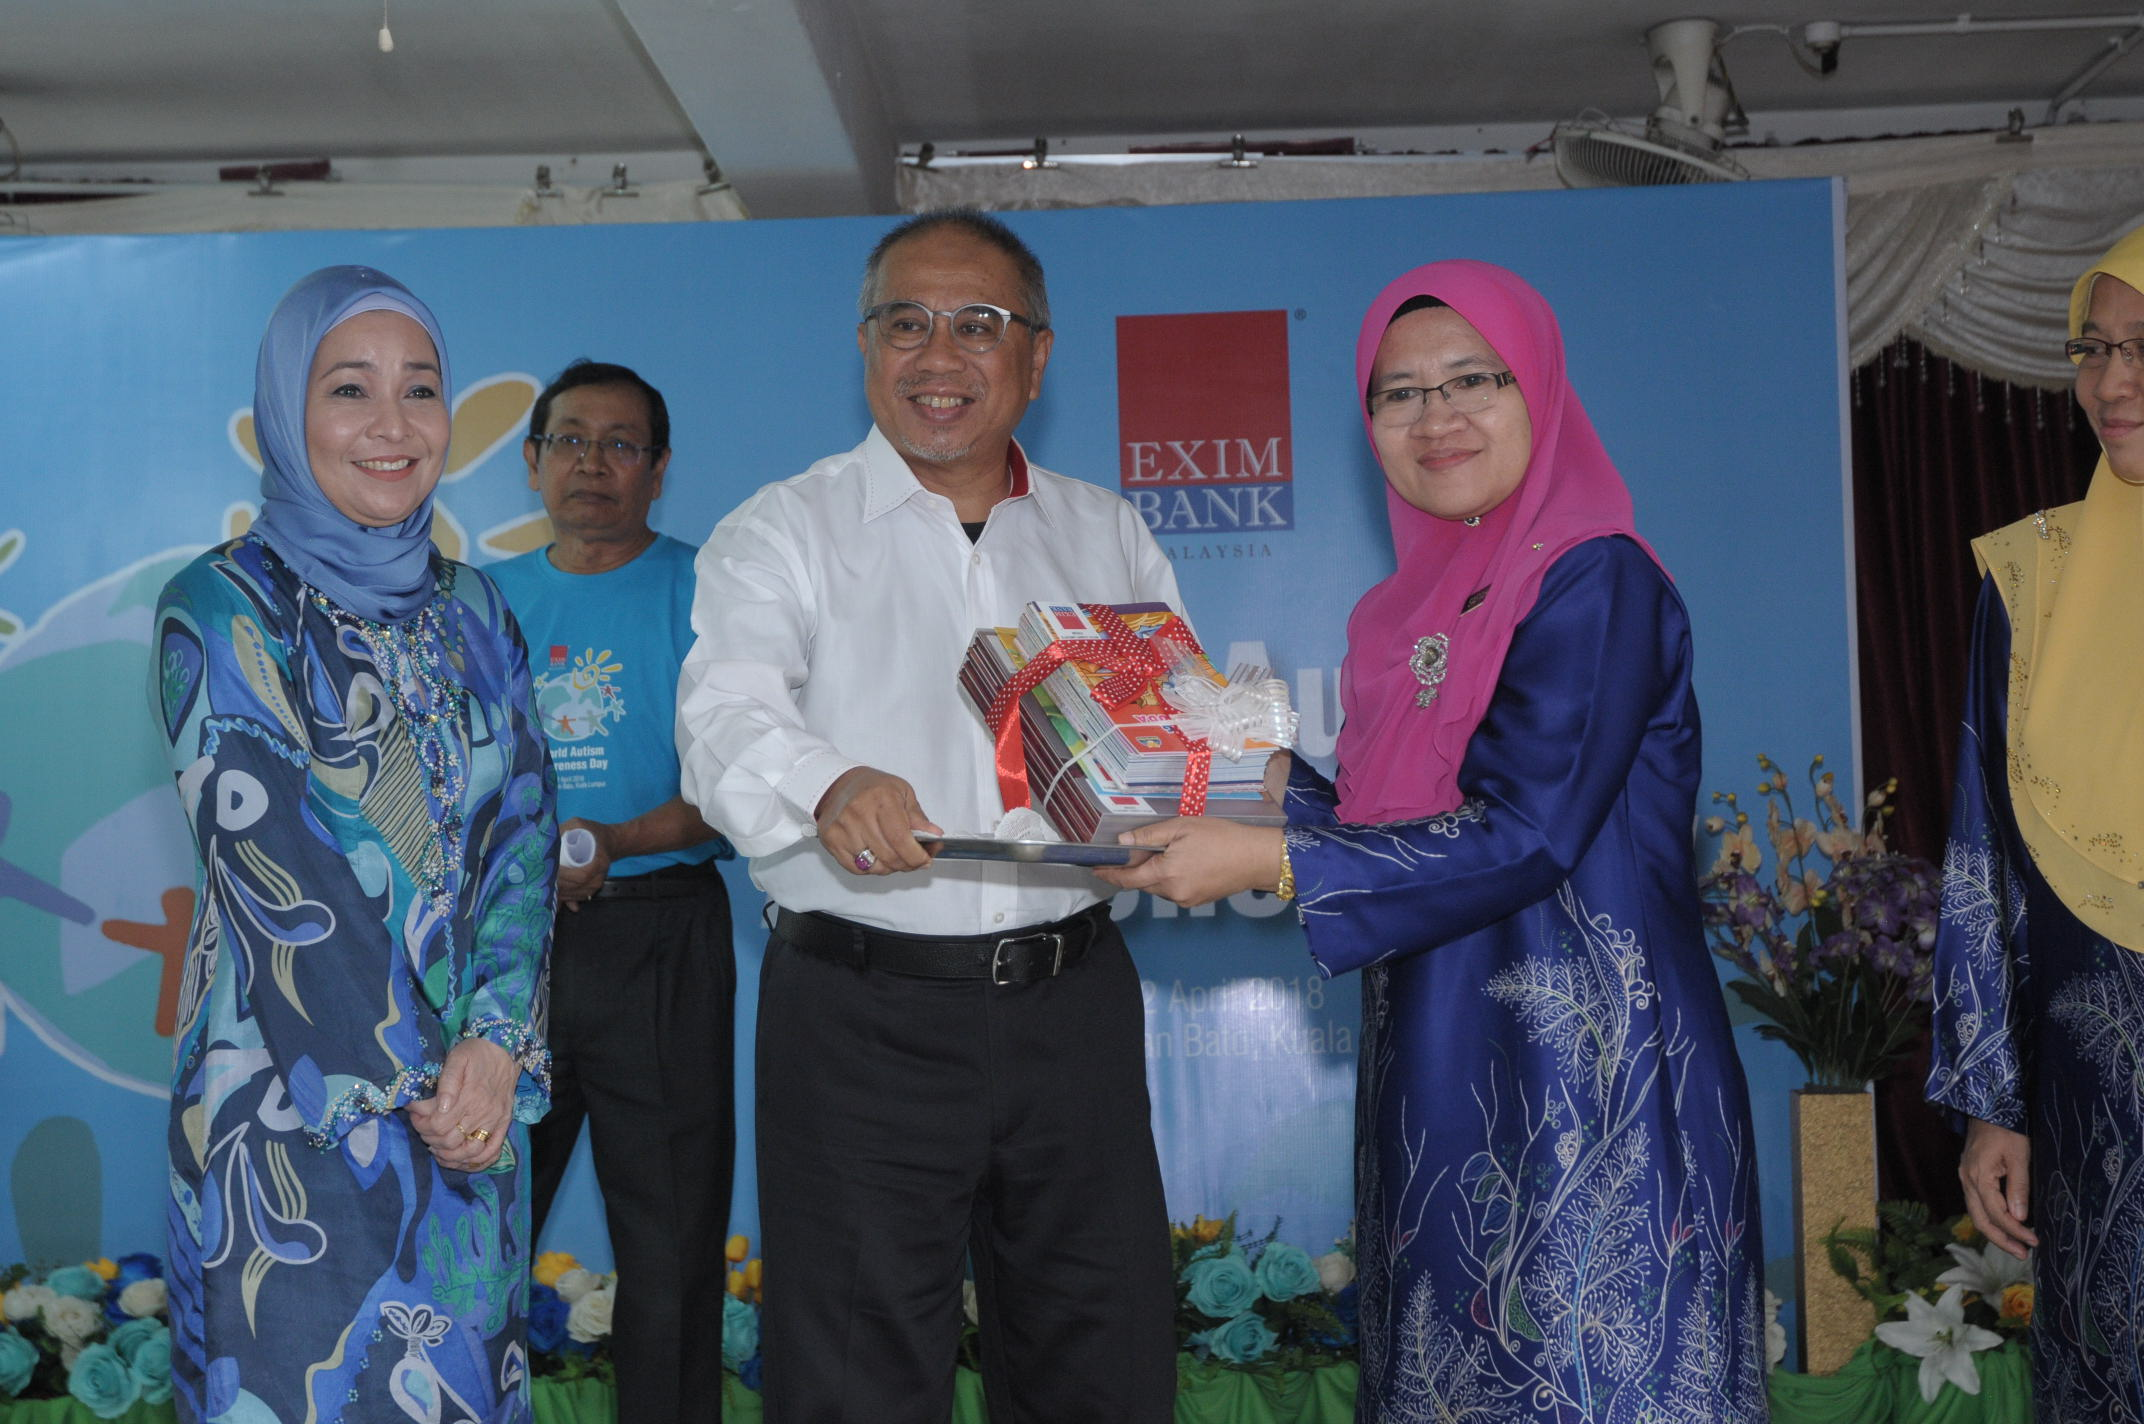 EXIM Bank celebrated World Autism Awareness Day with a group of autistic children under the 'Program Pendidikan Khas Integrasi' at Sekolah Kebangsaan Jalan Batu.